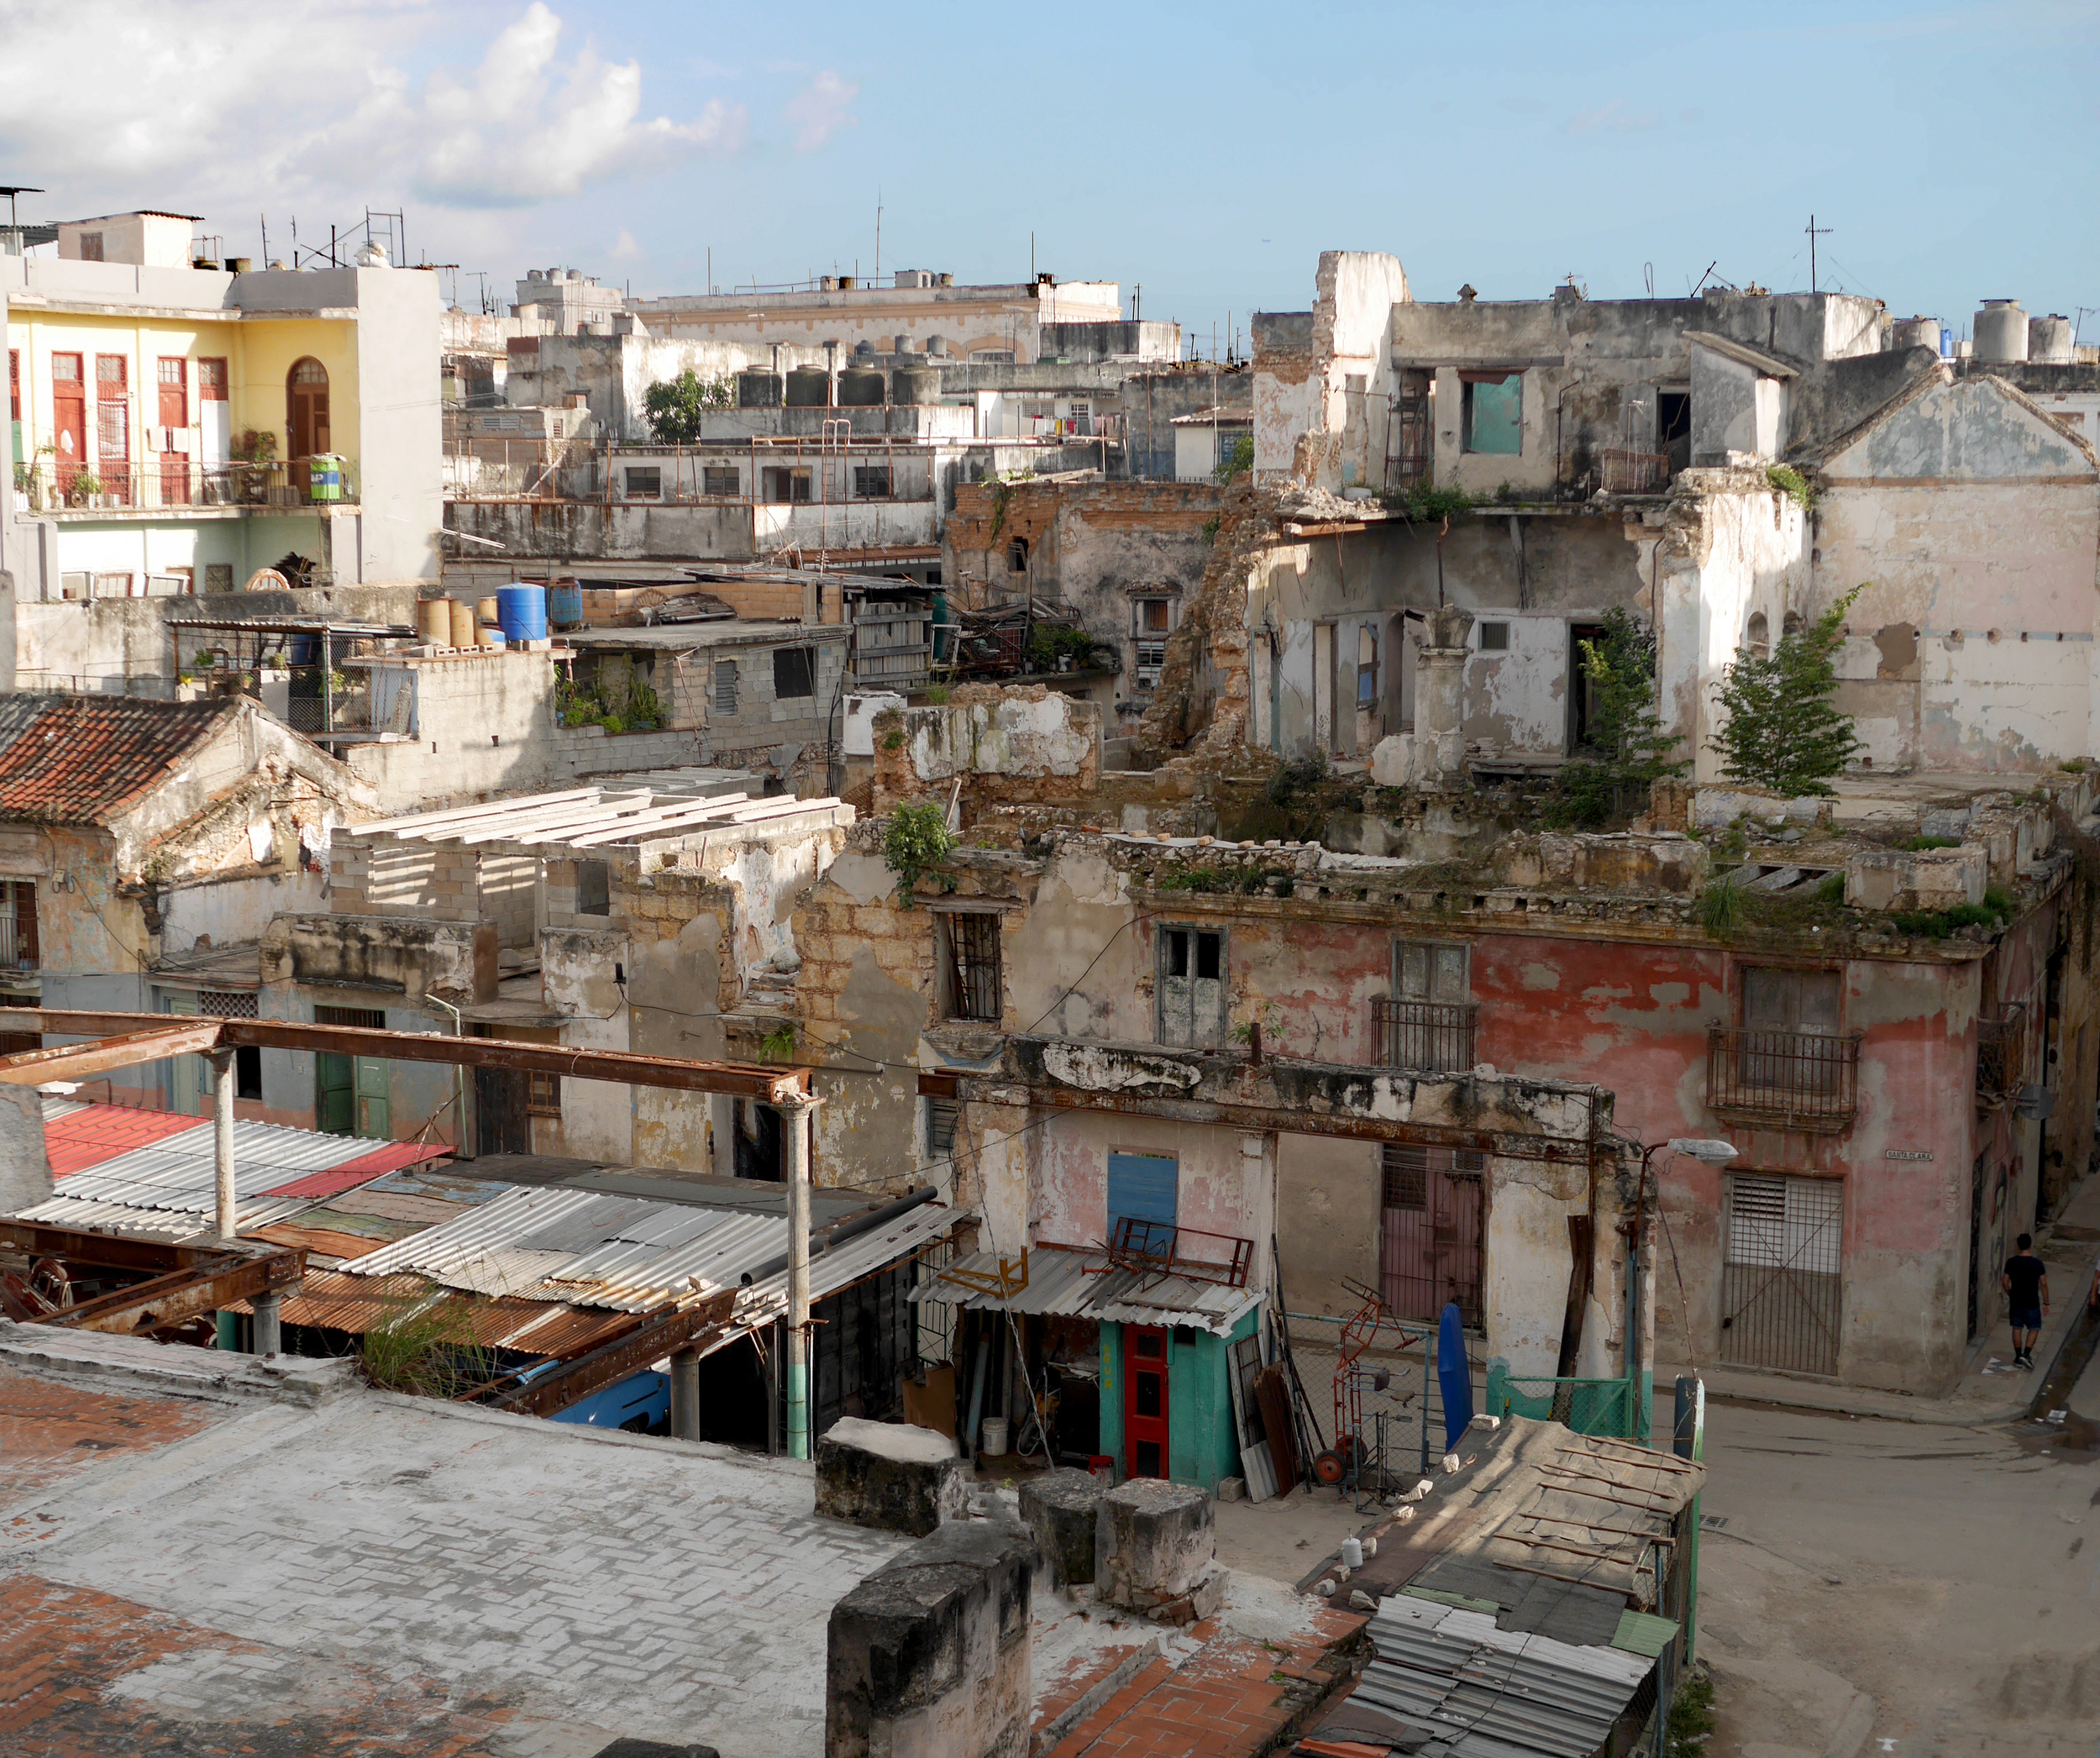 My first view of Old Havana. Looking right...